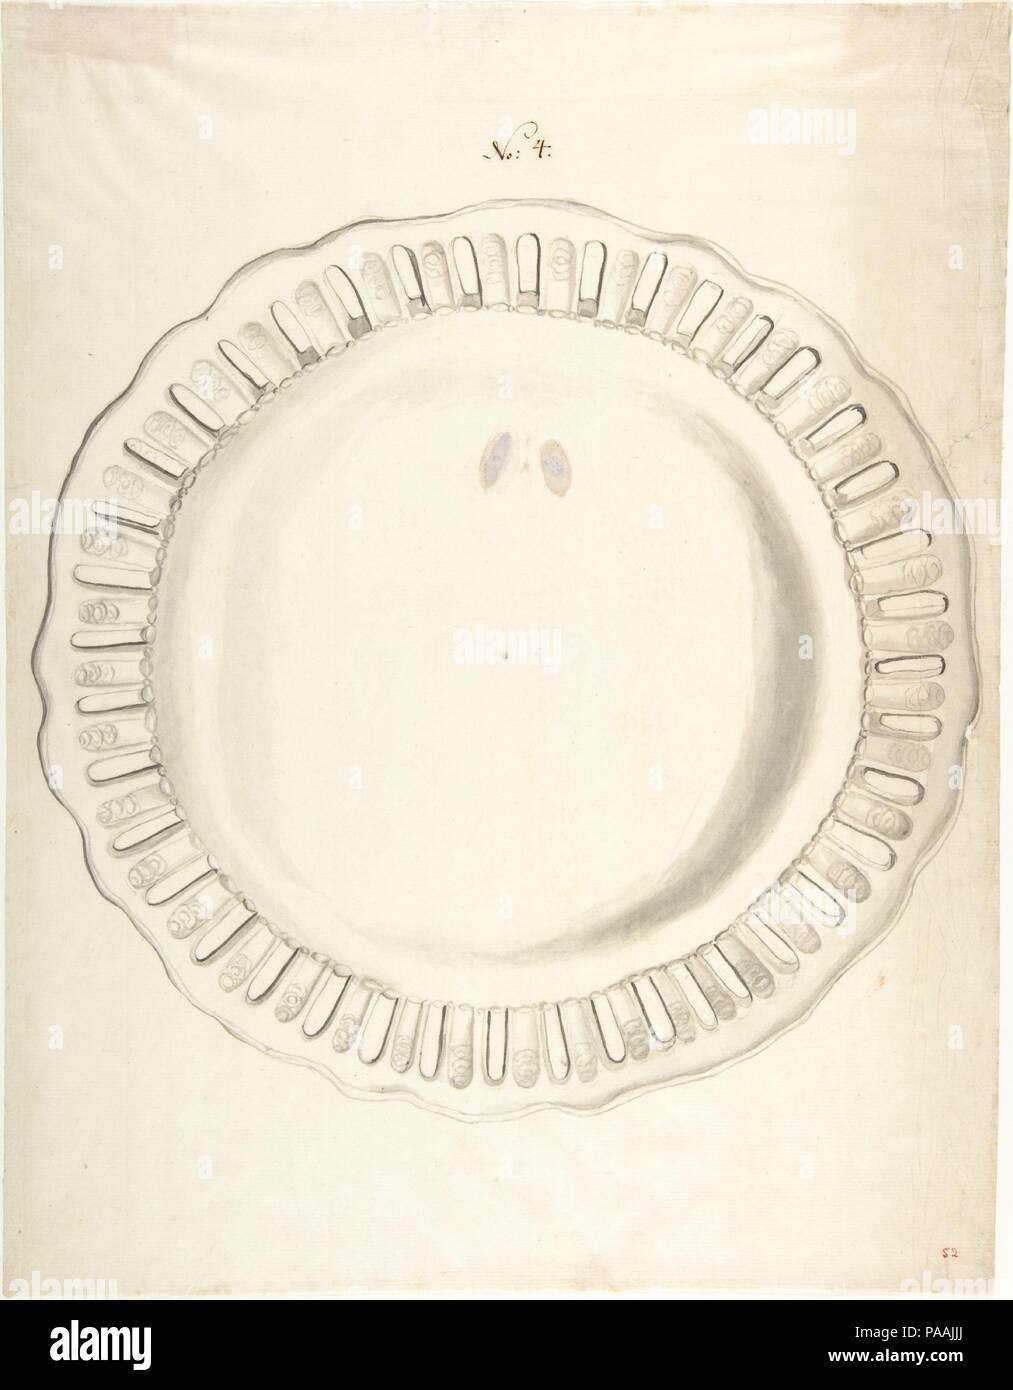 Design for a Plate. Artist: Anonymous, French, 18th century. Dimensions: 10 1/8 x 13 3/16 in.  (25.7 x 33.5 cm). Date: ca. 1770-90. Museum: Metropolitan Museum of Art, New York, USA. - Stock Image